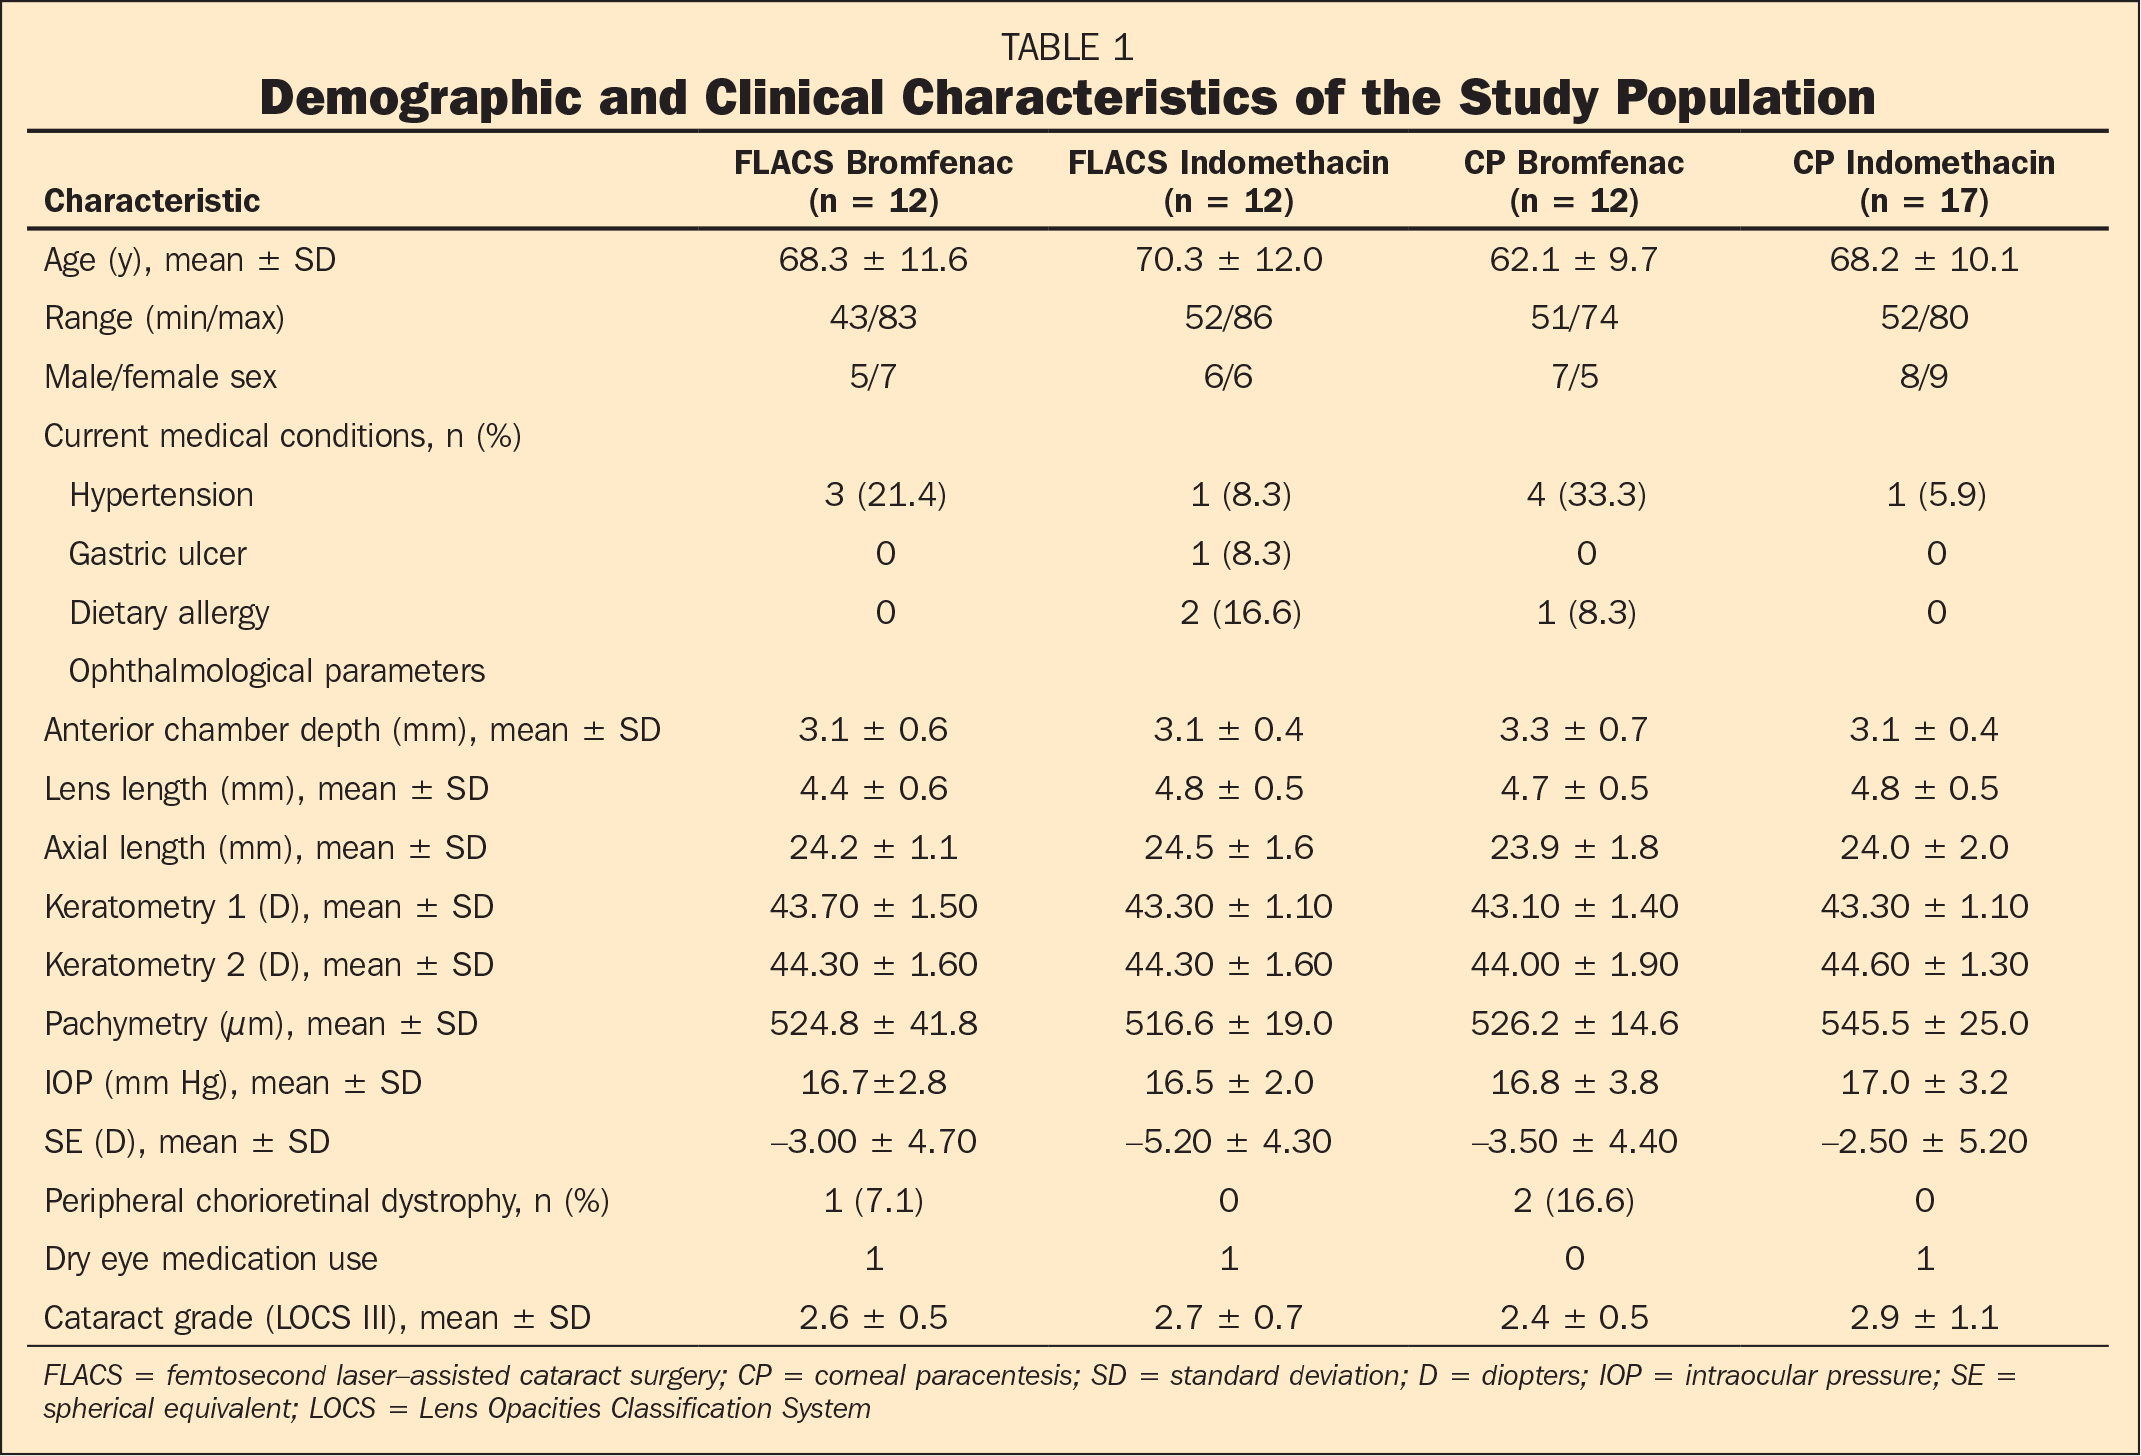 Demographic and Clinical Characteristics of the Study Population